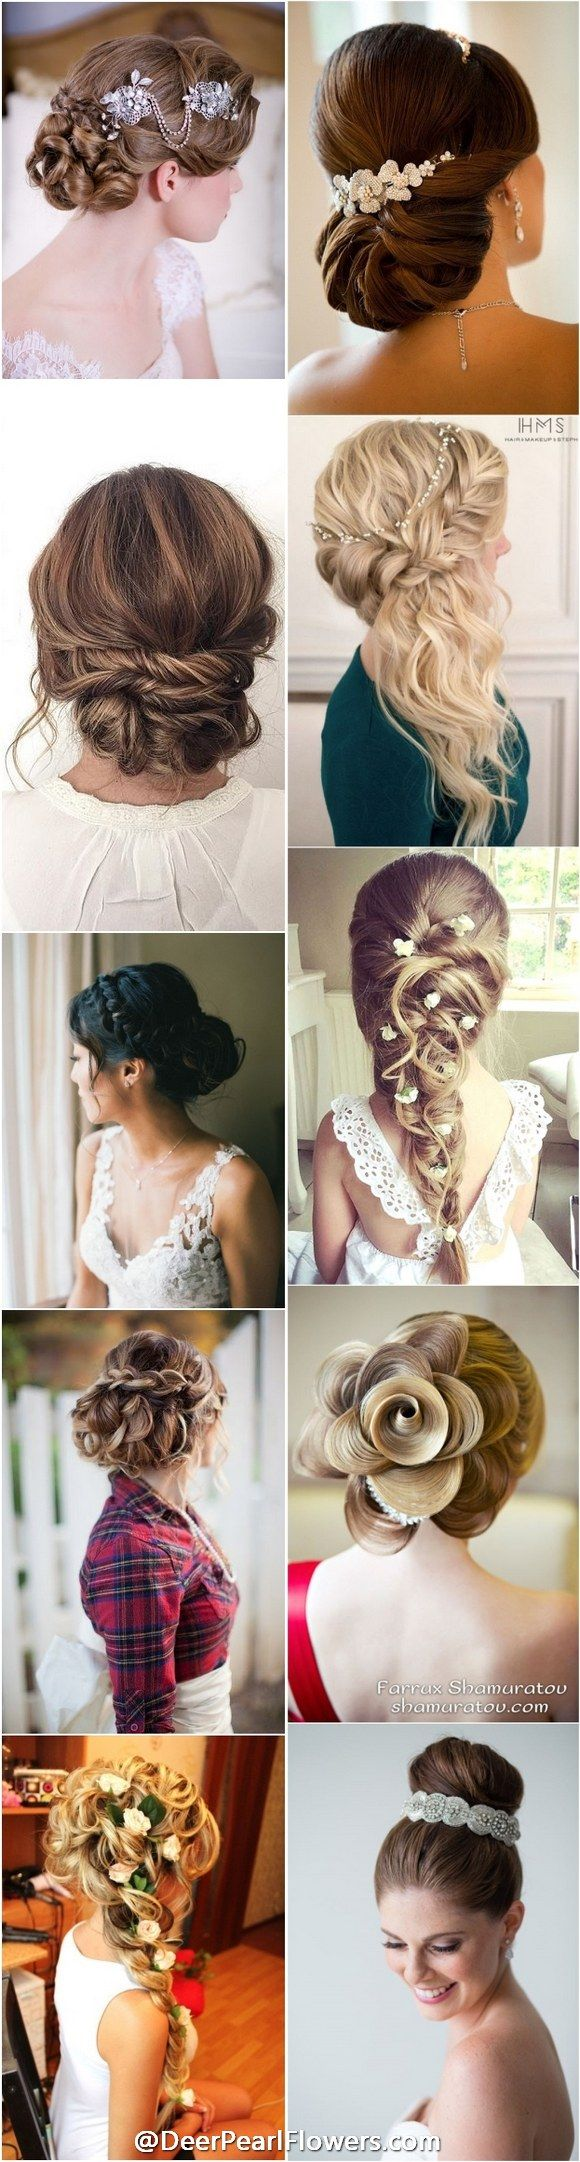 1000+ wedding hairstyles for long hair / http://www.deerpearlflowers.com/wedding-hairstyles/